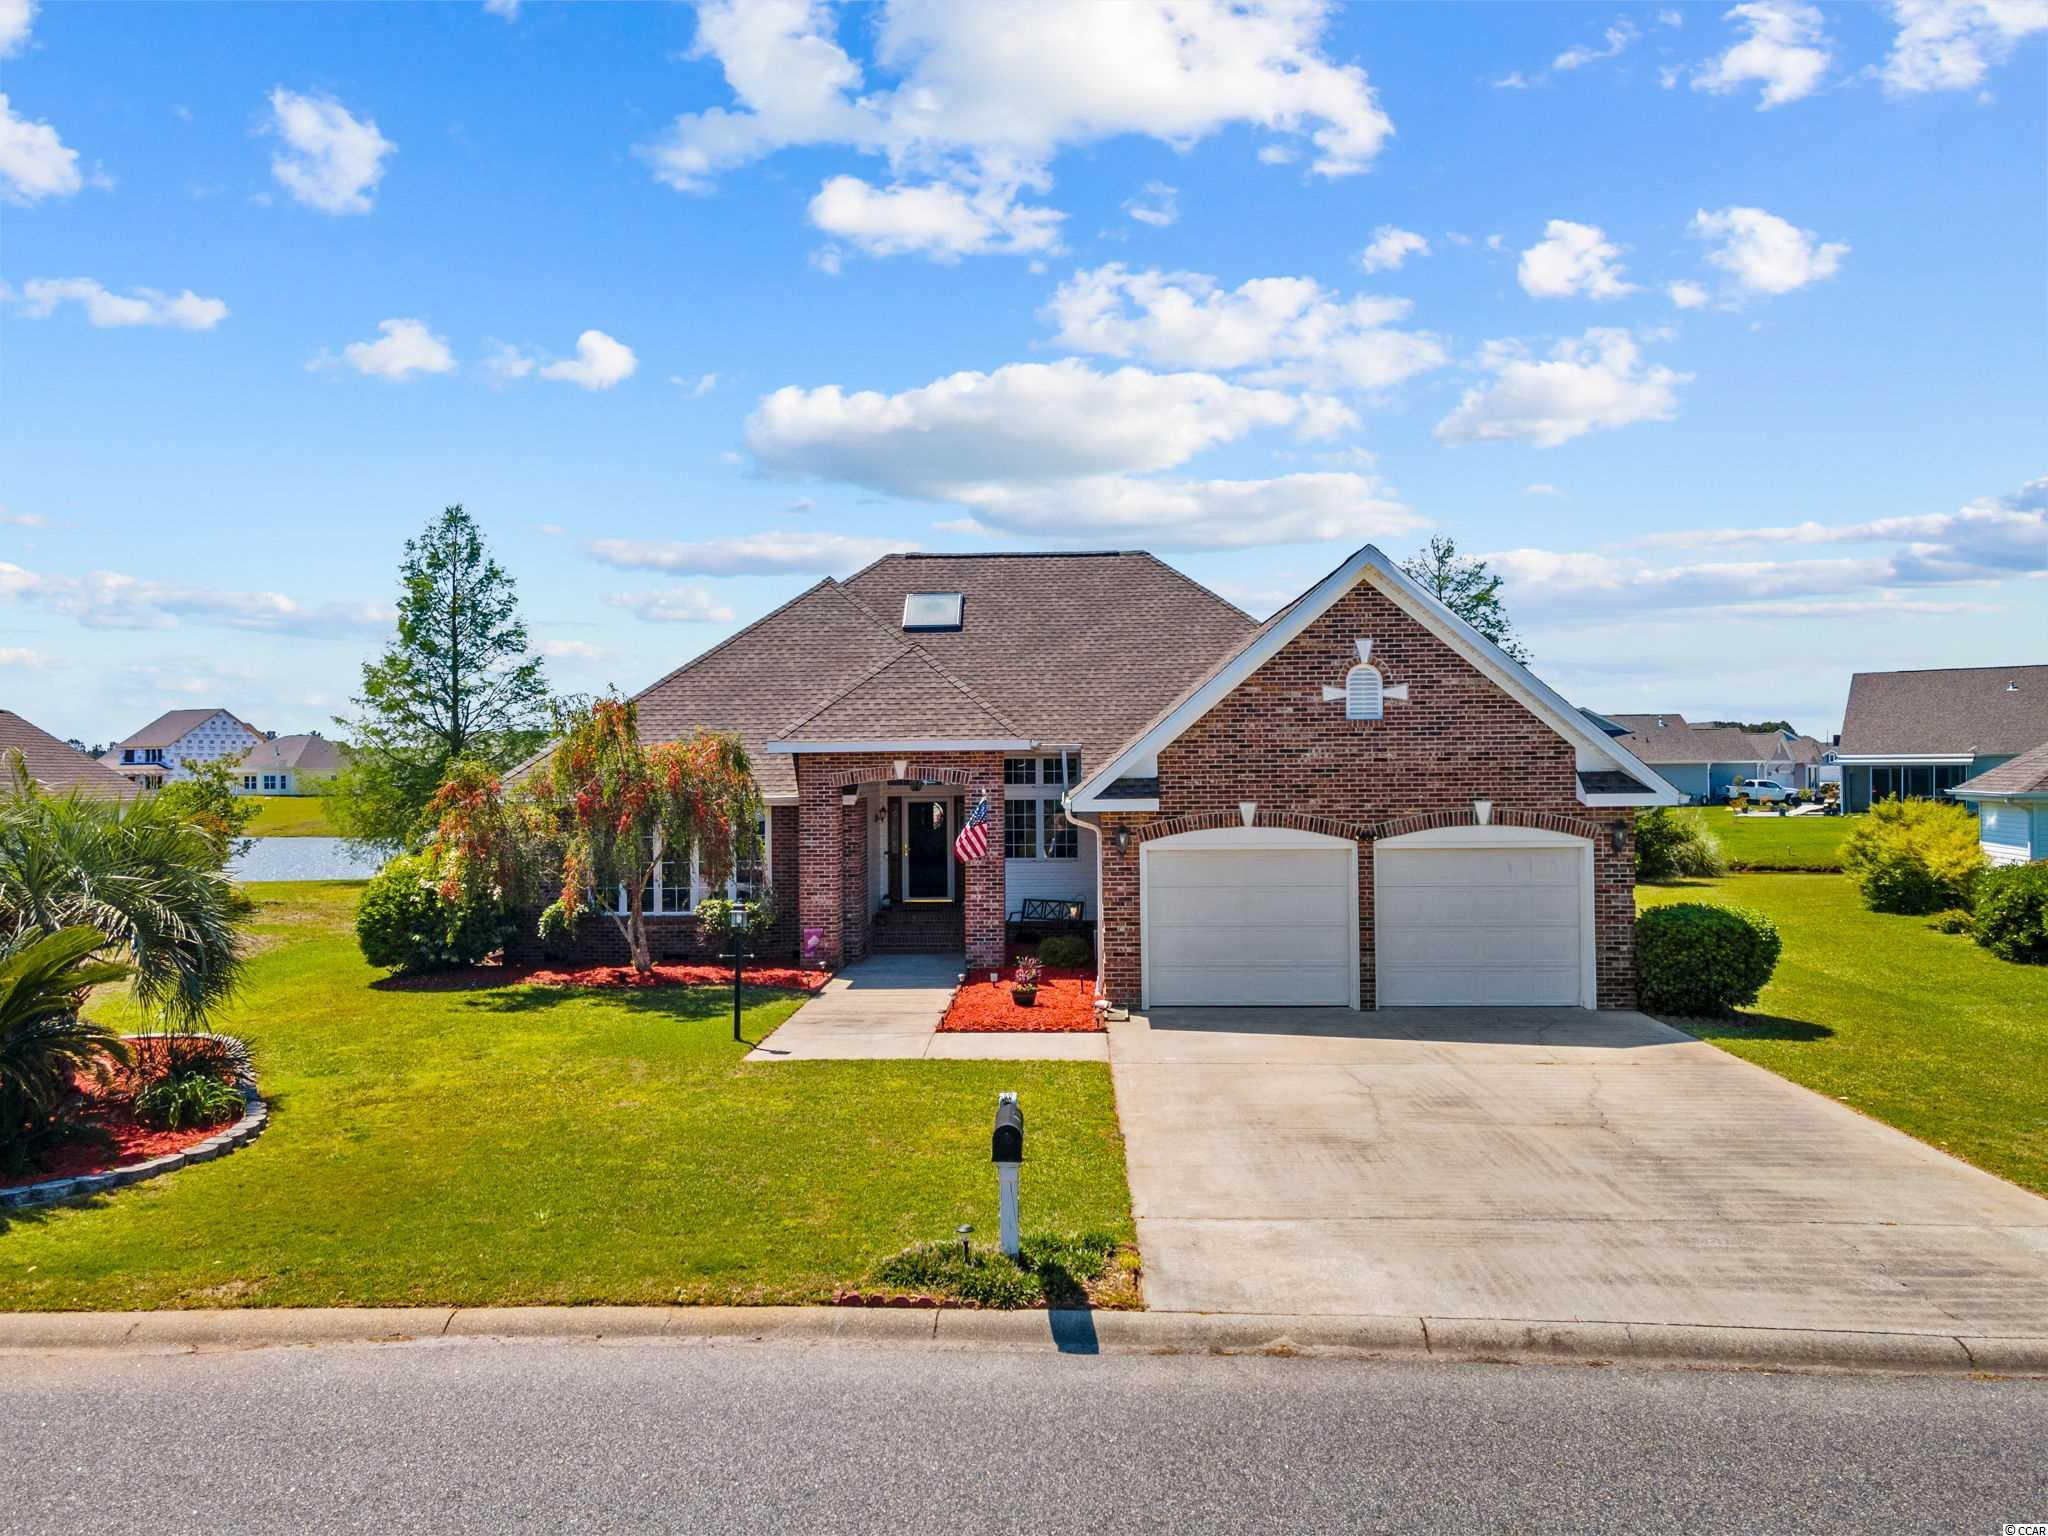 Introducing this elegant custom built 3 bedroom 2 bath home located in the very popular Southwood community. This piece of paradise presents a grand foyer entryway with a large transom window, vaulted ceilings, hardwood, tile & carpet flooring, living room includes a cozy fireplace with gas logs, a versatile family room, and showcases an inviting Carolina room with tranquil lake views. Prepare a delightful meal in your modern kitchen with granite solid surface counter tops, stainless steel appliances, smooth flat top range, built-in microwave, dishwasher, French door refrigerator with ice & water door dispenser & freezer drawer, along with ample counter & cabinet space. Serve your meal in the graceful formal dining area with a sliding glass door access to the relaxing screened in patio. The comfortable master suite features an ideal bump out with memorable lake views and a ceiling fan. The upscale master bath offers a space saving double pocket door entryway, vanity with dual sinks, comfort station, soothing jetted tub, a deluxe step-in shower, and a large walk-in closet. This delightful home is completed with two additional bedrooms, a full guest bath, laundry room, and a 2 car attached garage. This home affords you easy access to the beach and golfing along with all of the other activities and happenings in Myrtle Beach and the new Surfside Beach Entertainment District including fun eateries, award winning off-Broadway shows, public fishing piers, Marsh Walk, and intriguing shopping adventures along the Grand Strand. Conveniently located to your everyday needs, including grocery stores, banks, post offices, medical centers, doctors' offices, and pharmacies. Check out our state of the art 3-D Virtual Tour.